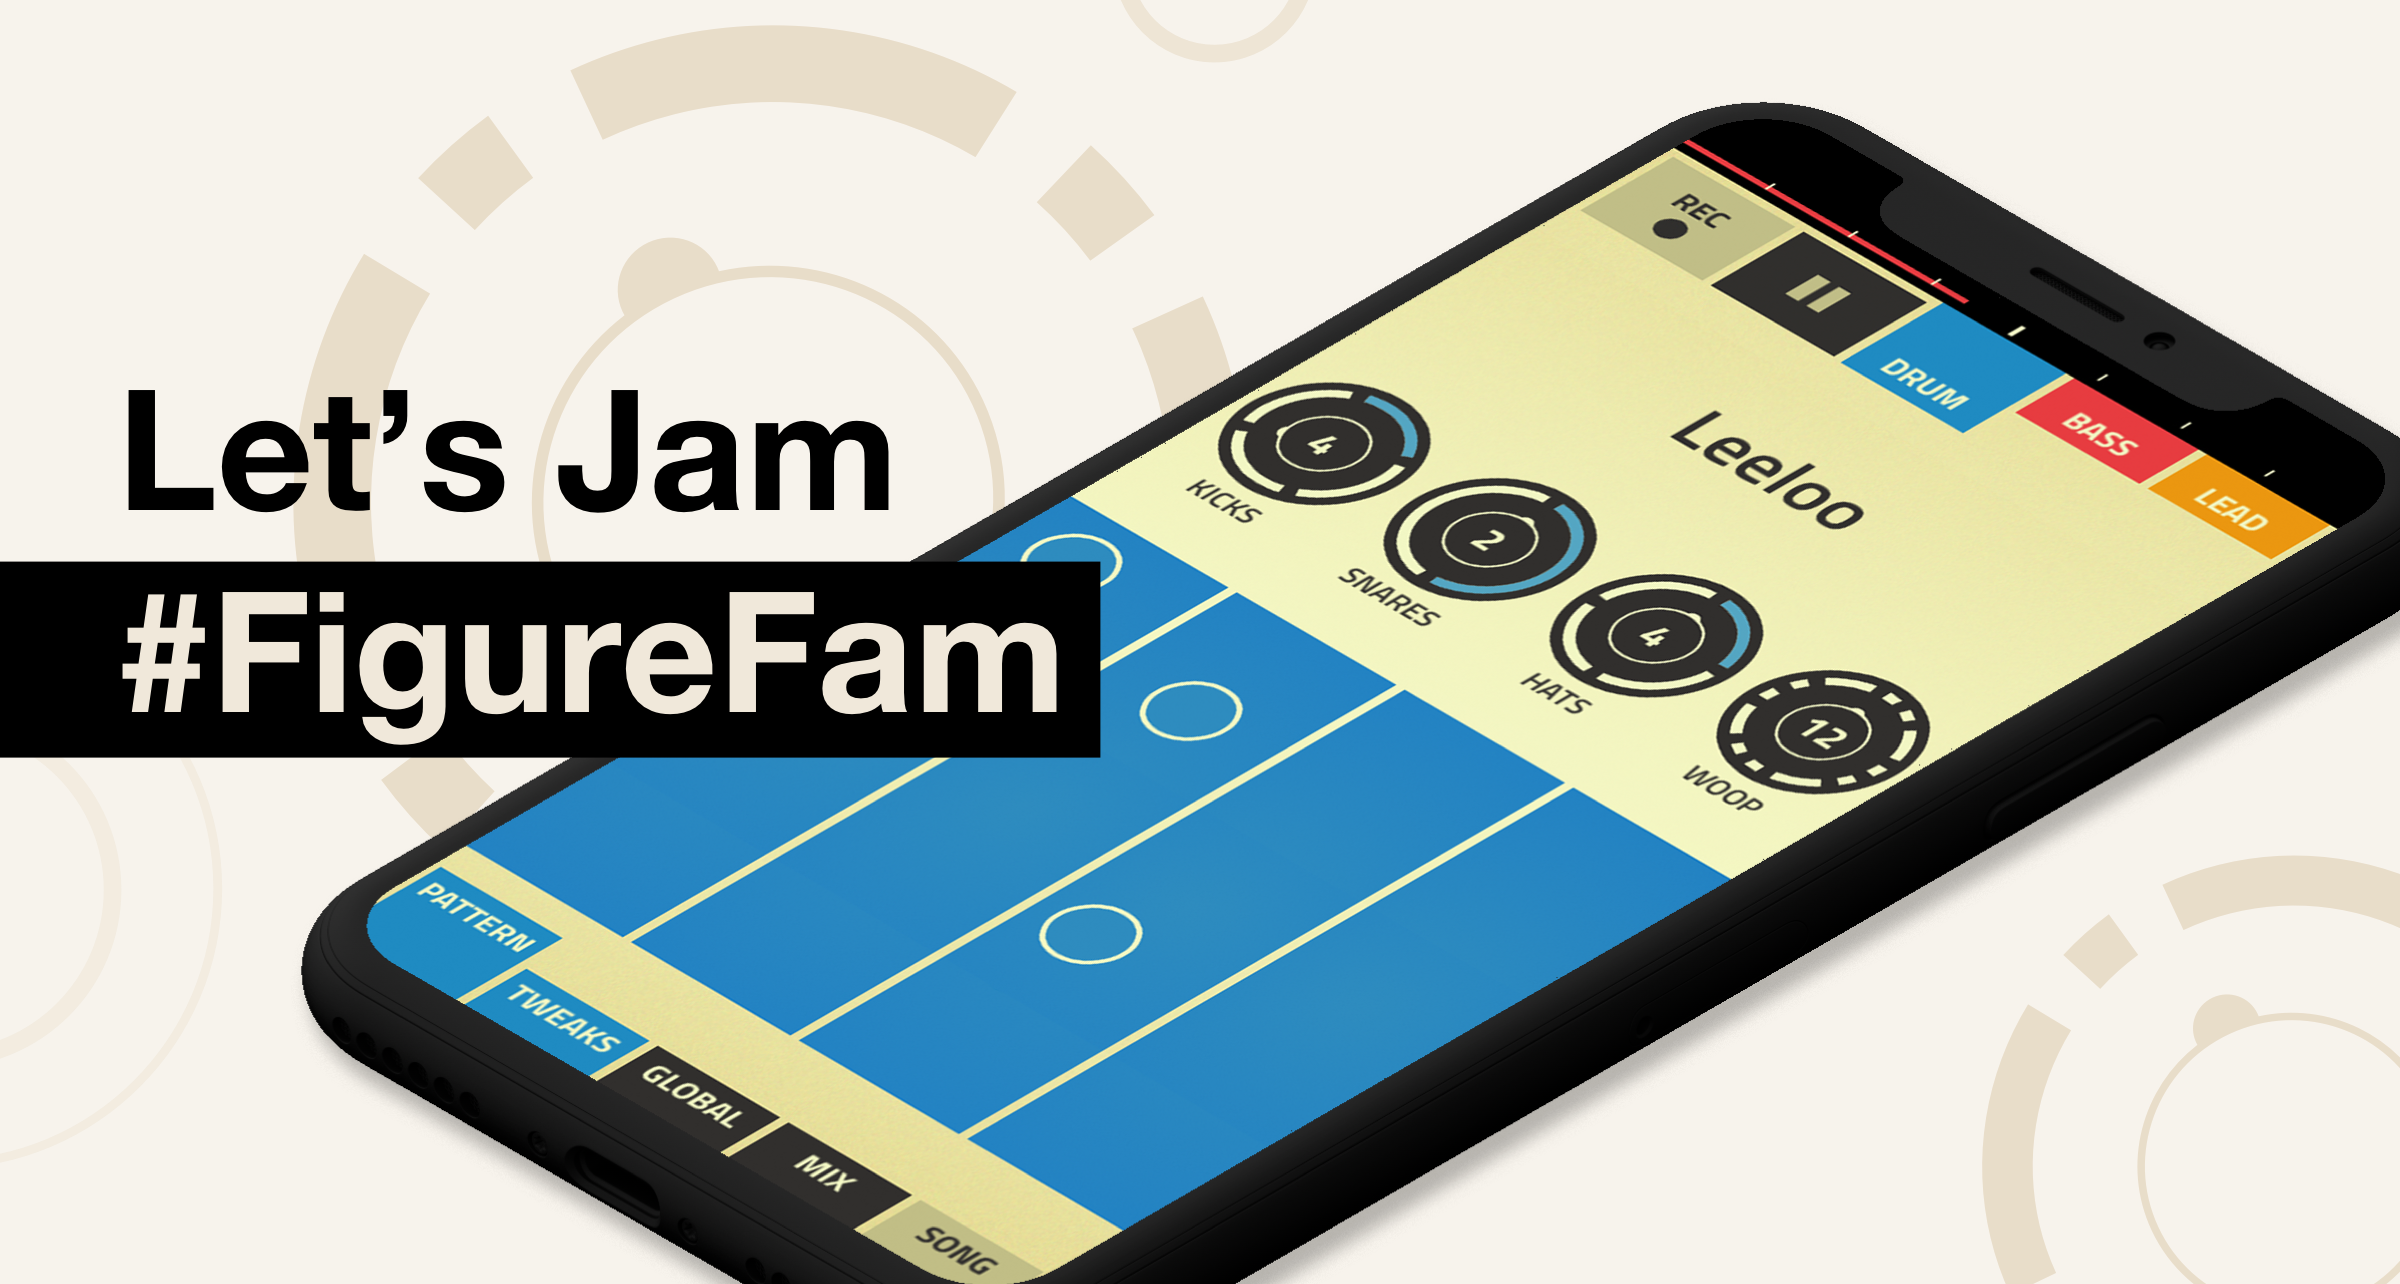 #FigureFam - Let's jam with Figure